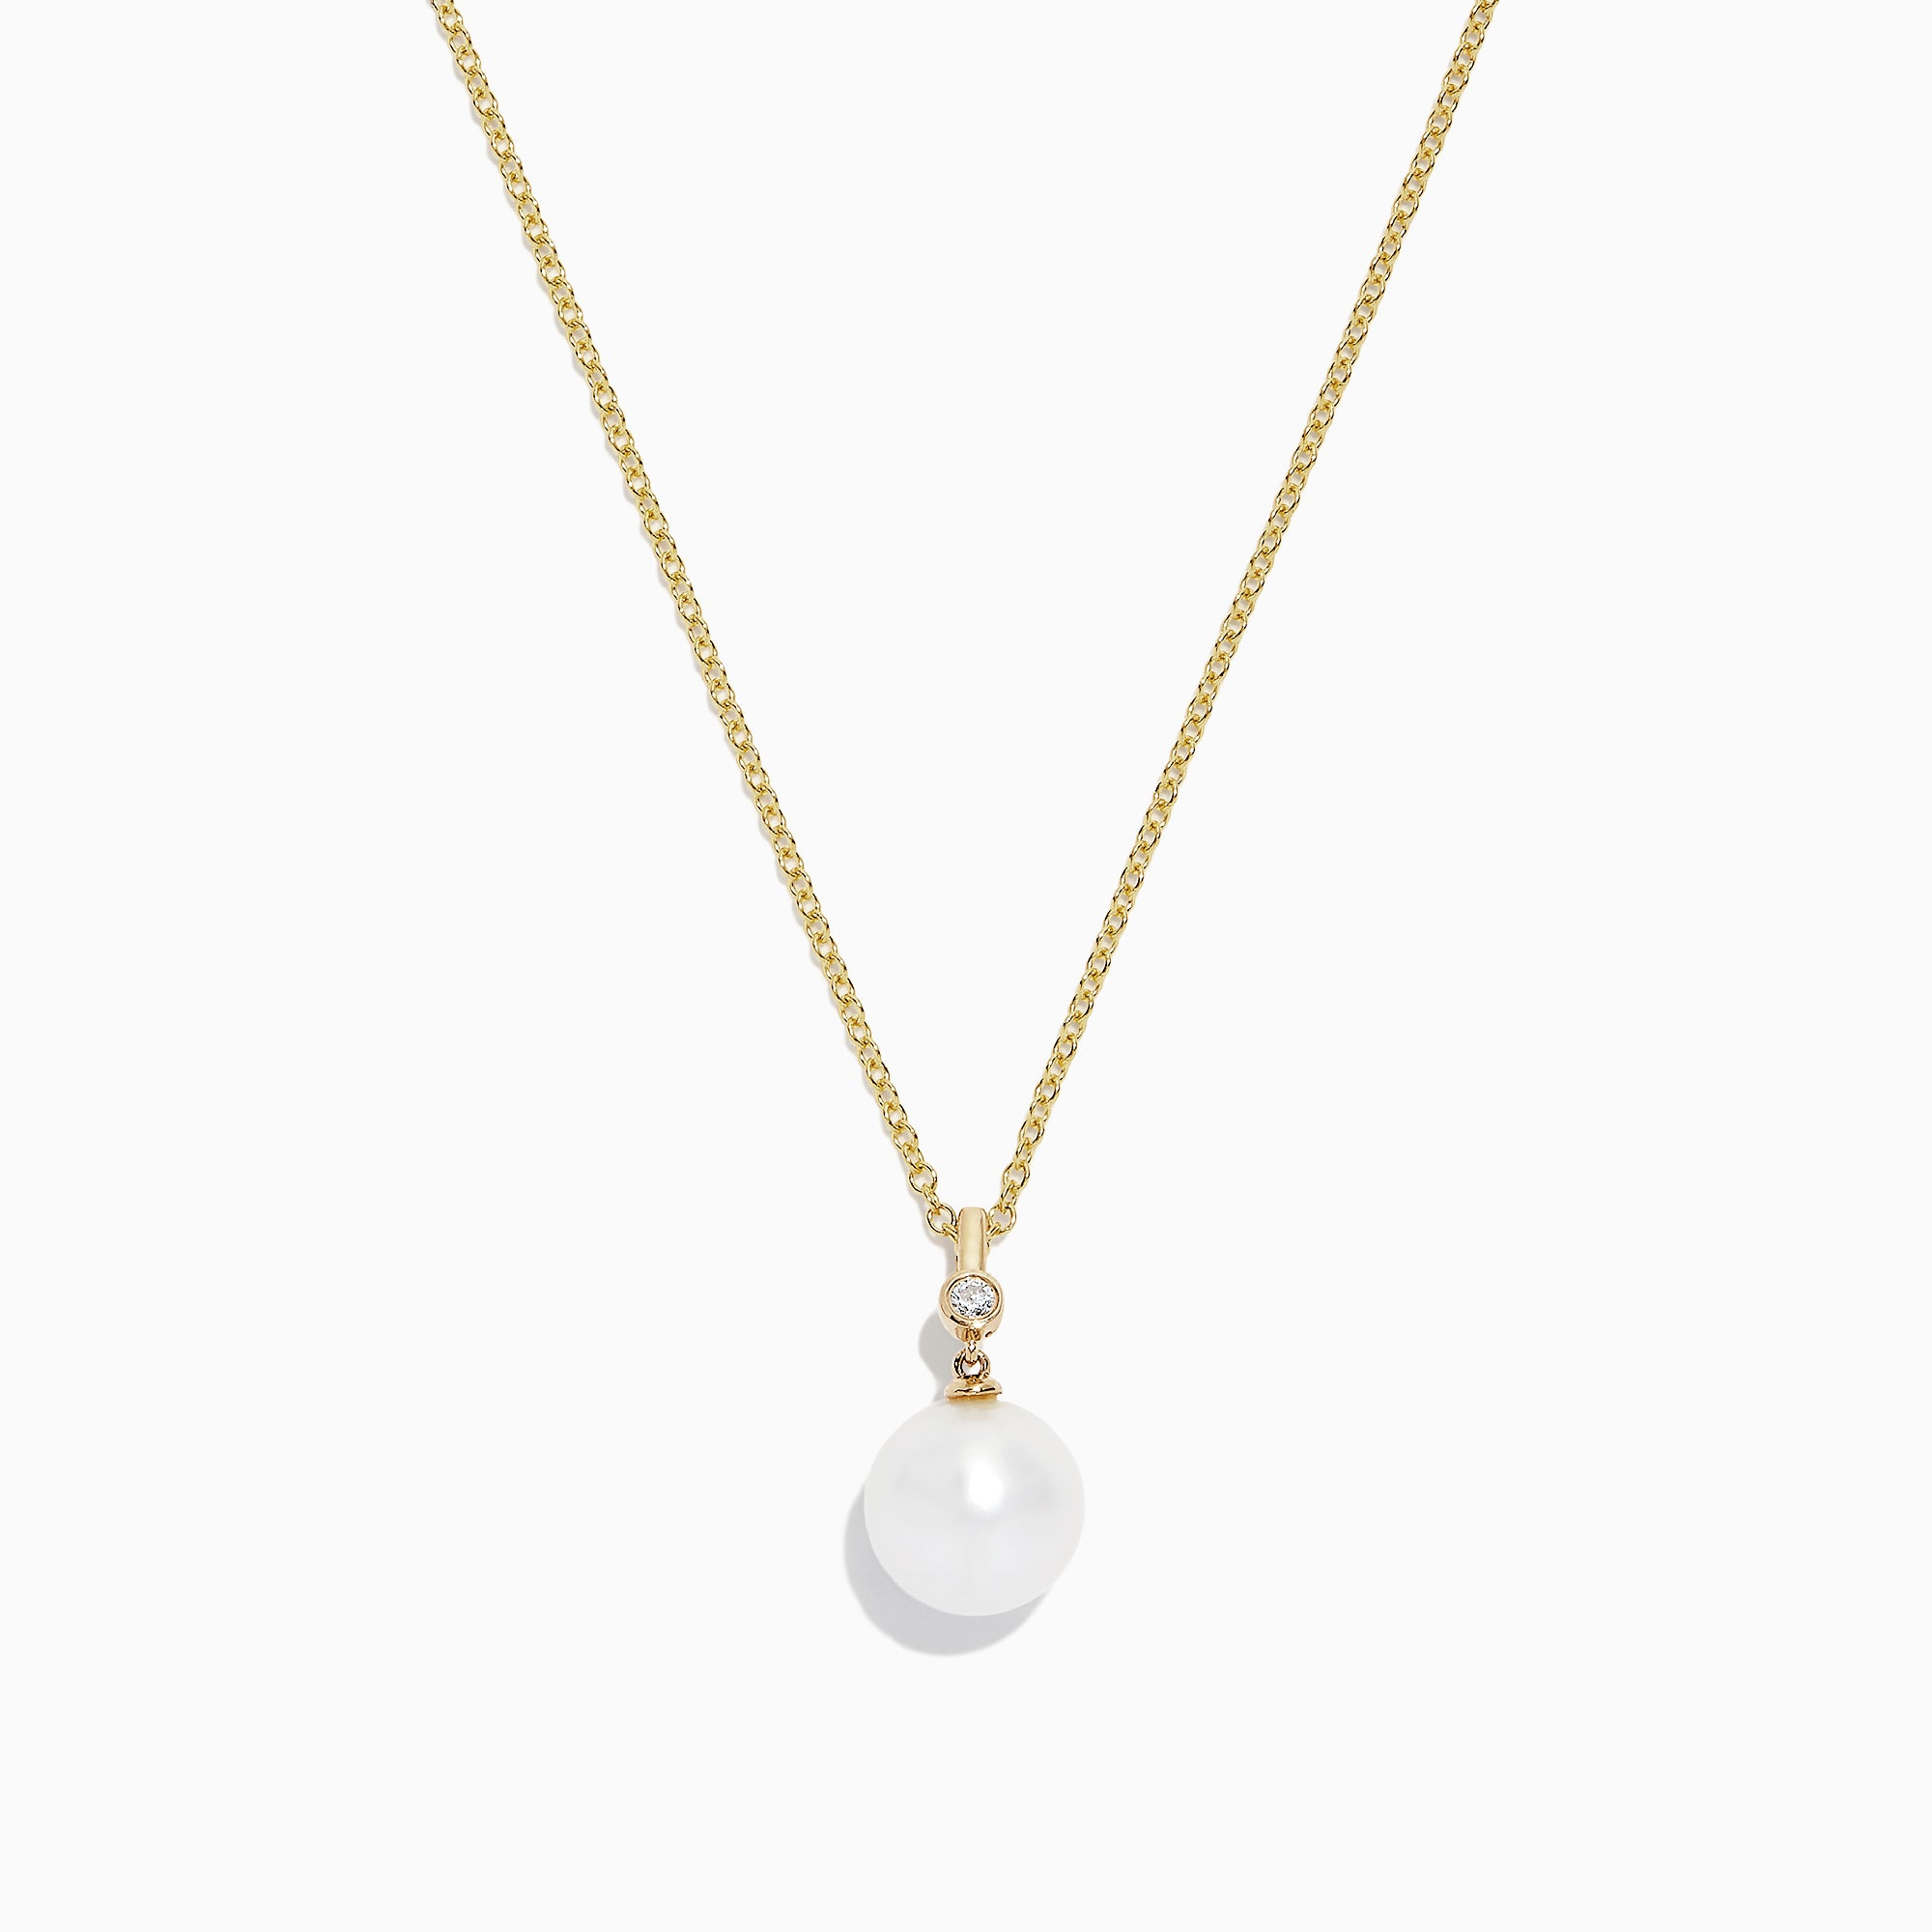 Effy 14K Yellow Gold Cultured Fresh Water Pearl and Diamond Pendant, 0.02 TCW